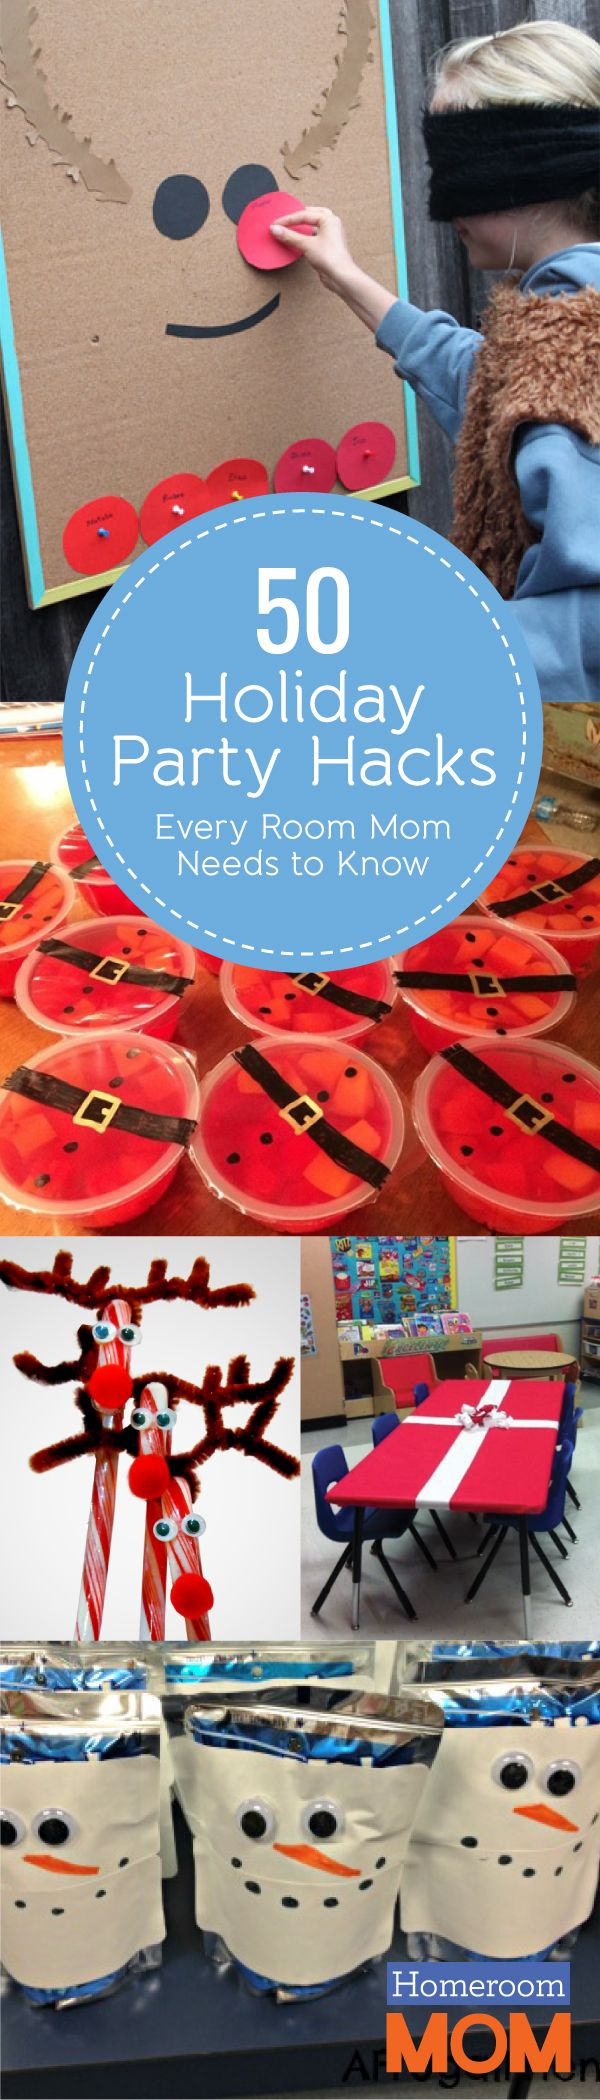 1000 class party ideas on pinterest room mom